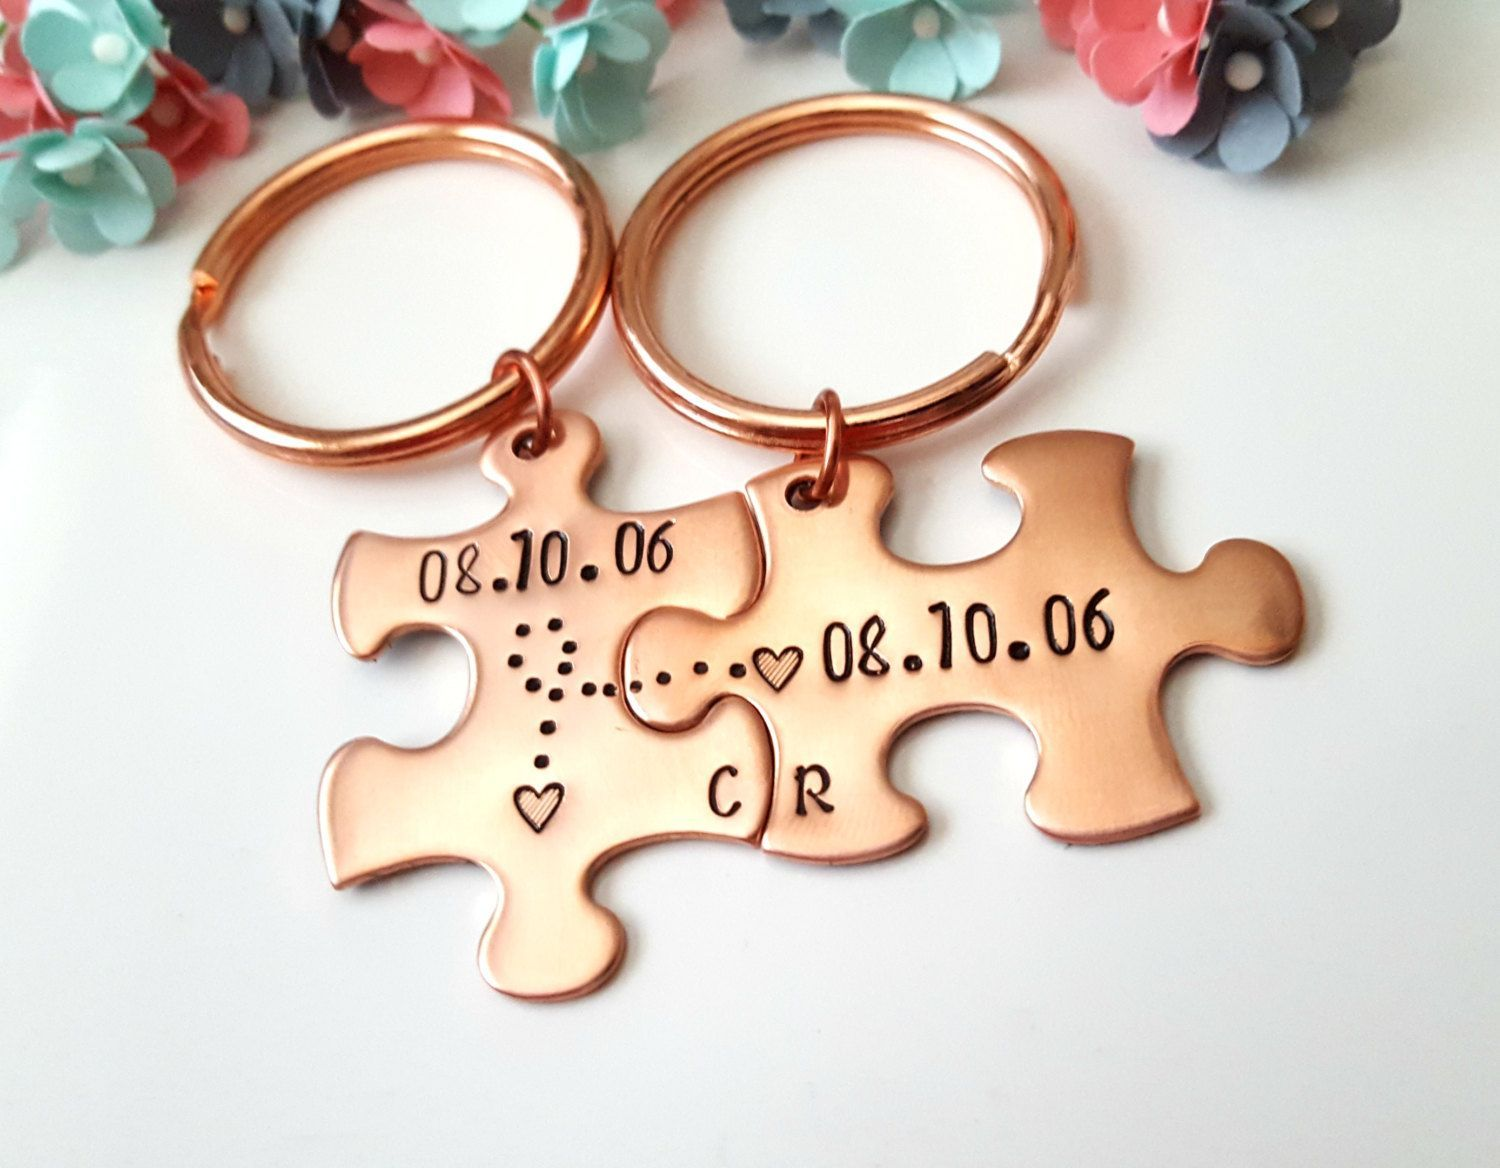 Anniversary Gifts For Boyfriend Couple Keychains Personalized